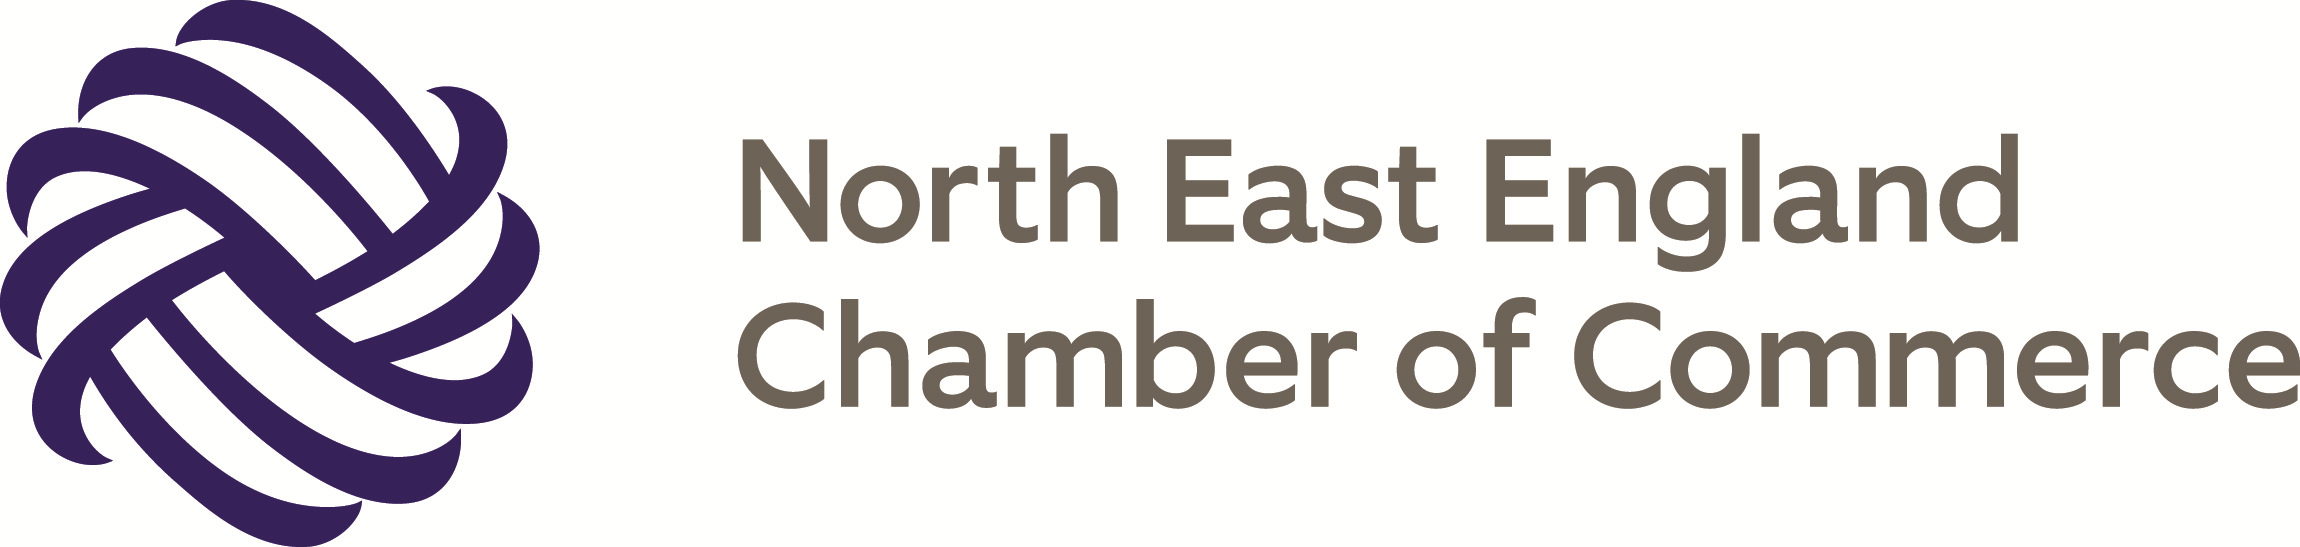 NECC - North East England Chamber of Commerce Logo